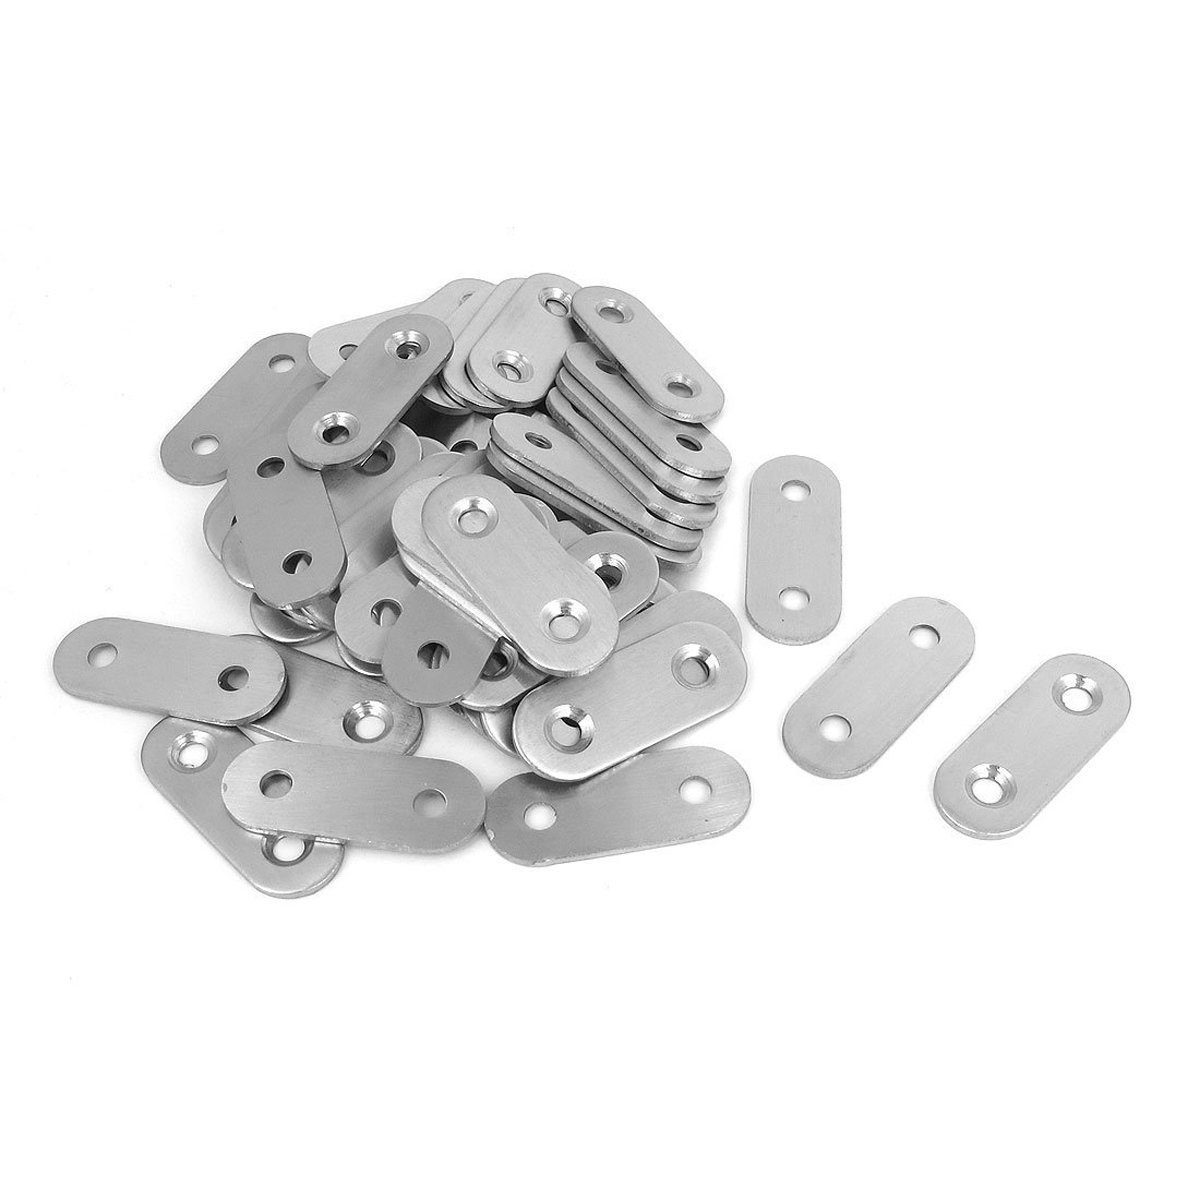 YXQ 50Pcs 2 Holes Flat Corner Brace Plate Bracket 1.6'' x 0.6'' x 2mm Metal Stainless Steel Repair Fixing Joining